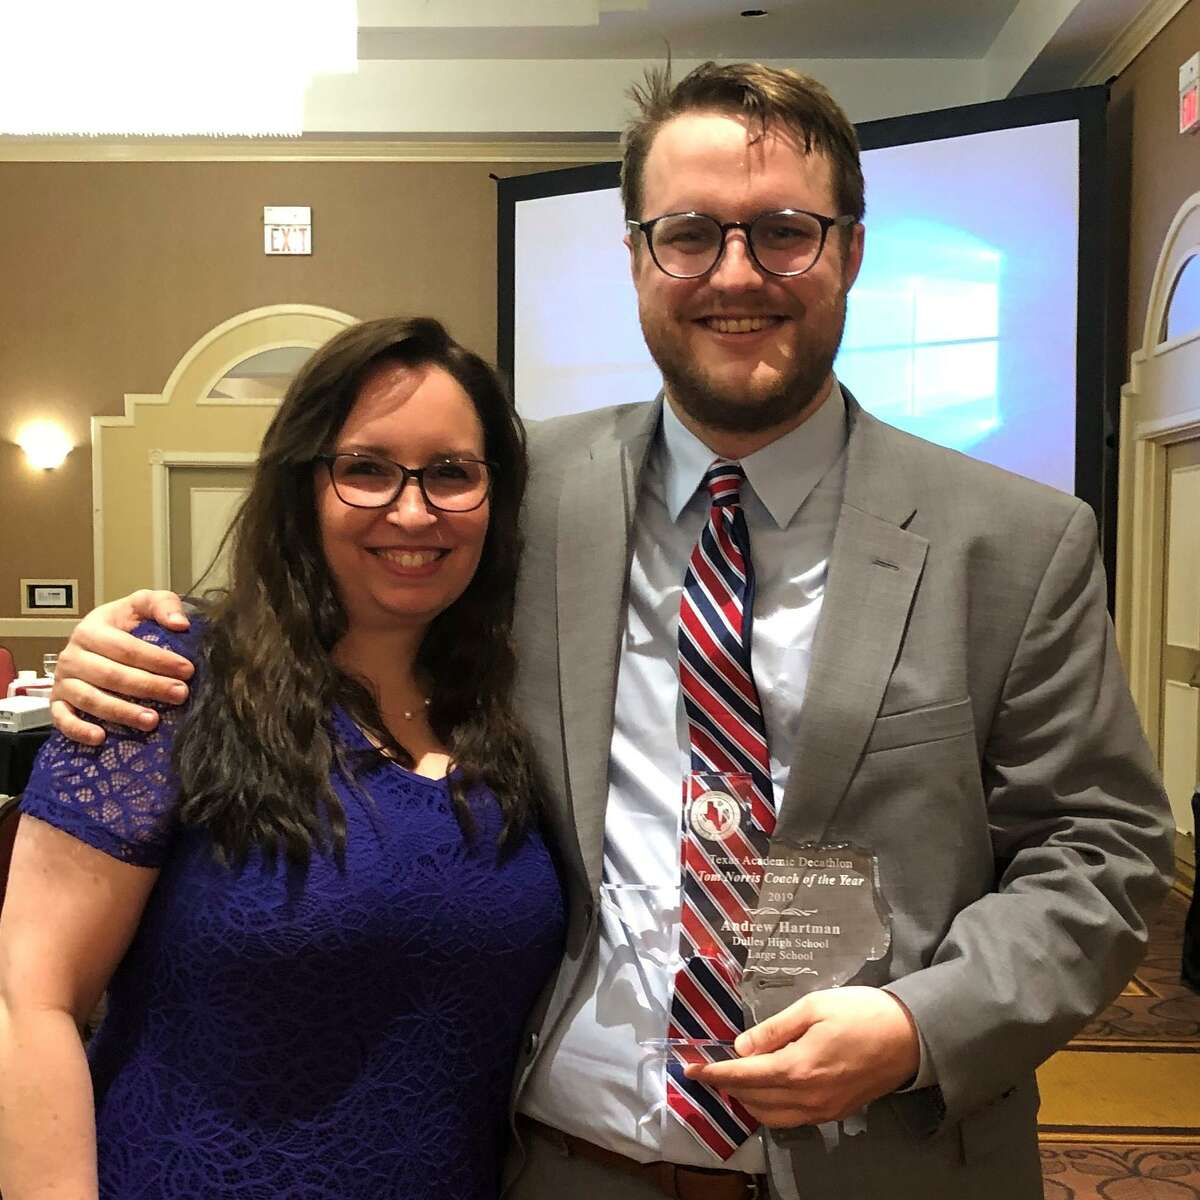 Andrew Hartman, in his fifth year as coach of the Dulles High School Academic Decathlon team, received the 2019 Tom Norris Texas Academic Decathlon Coach of the Year for a large school. He was nominated by Dulles High School Academic Decathlon coach Kelsey Halfen, left.